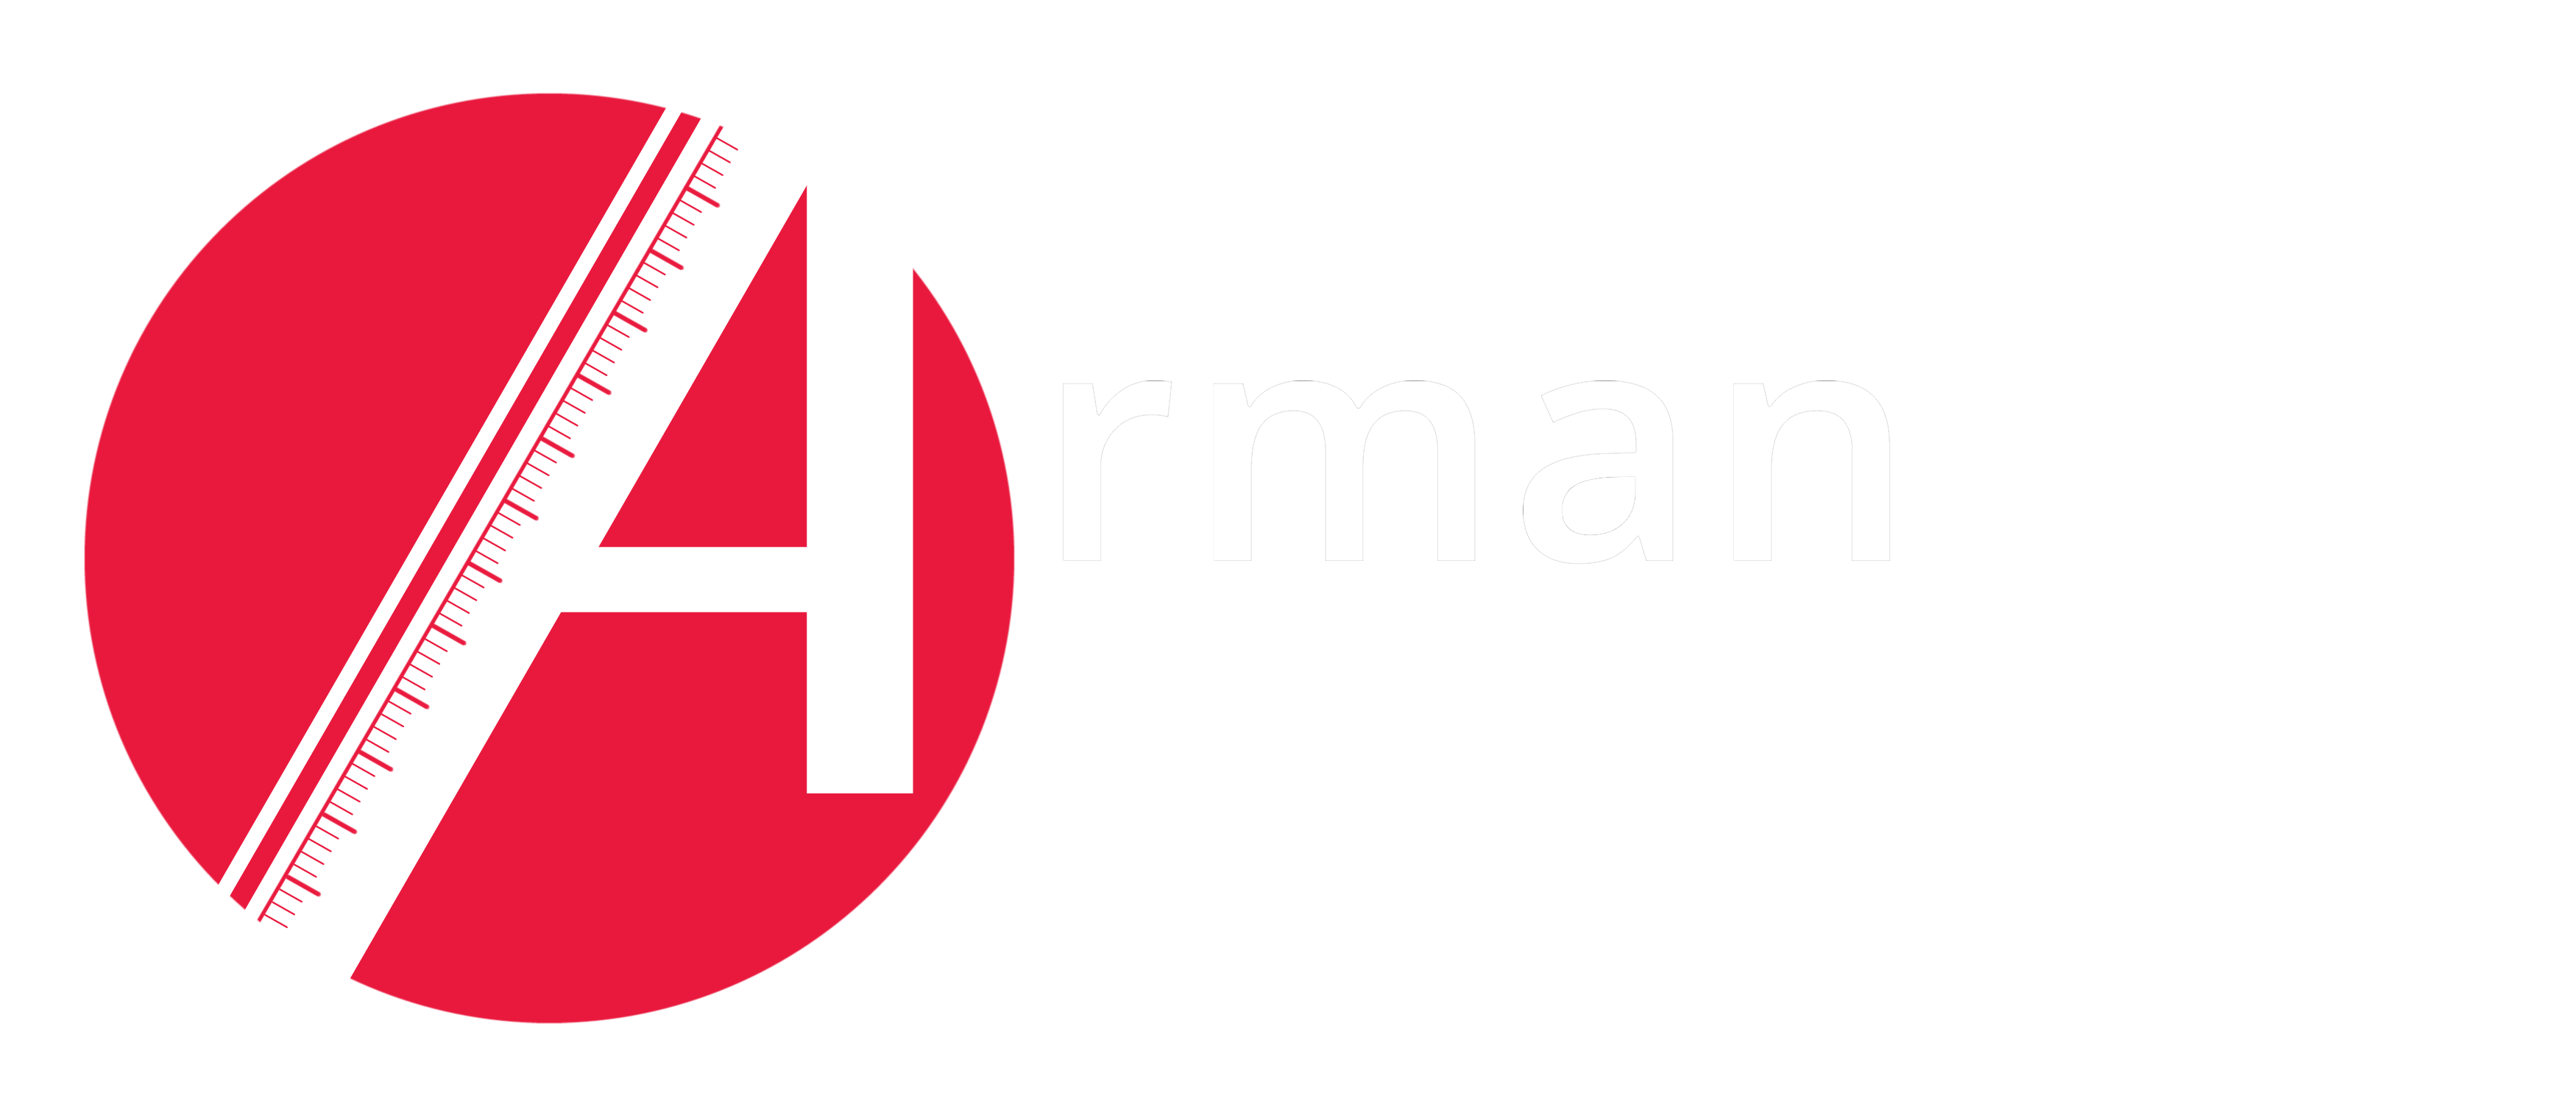 Arman Electrical Contracting LLC